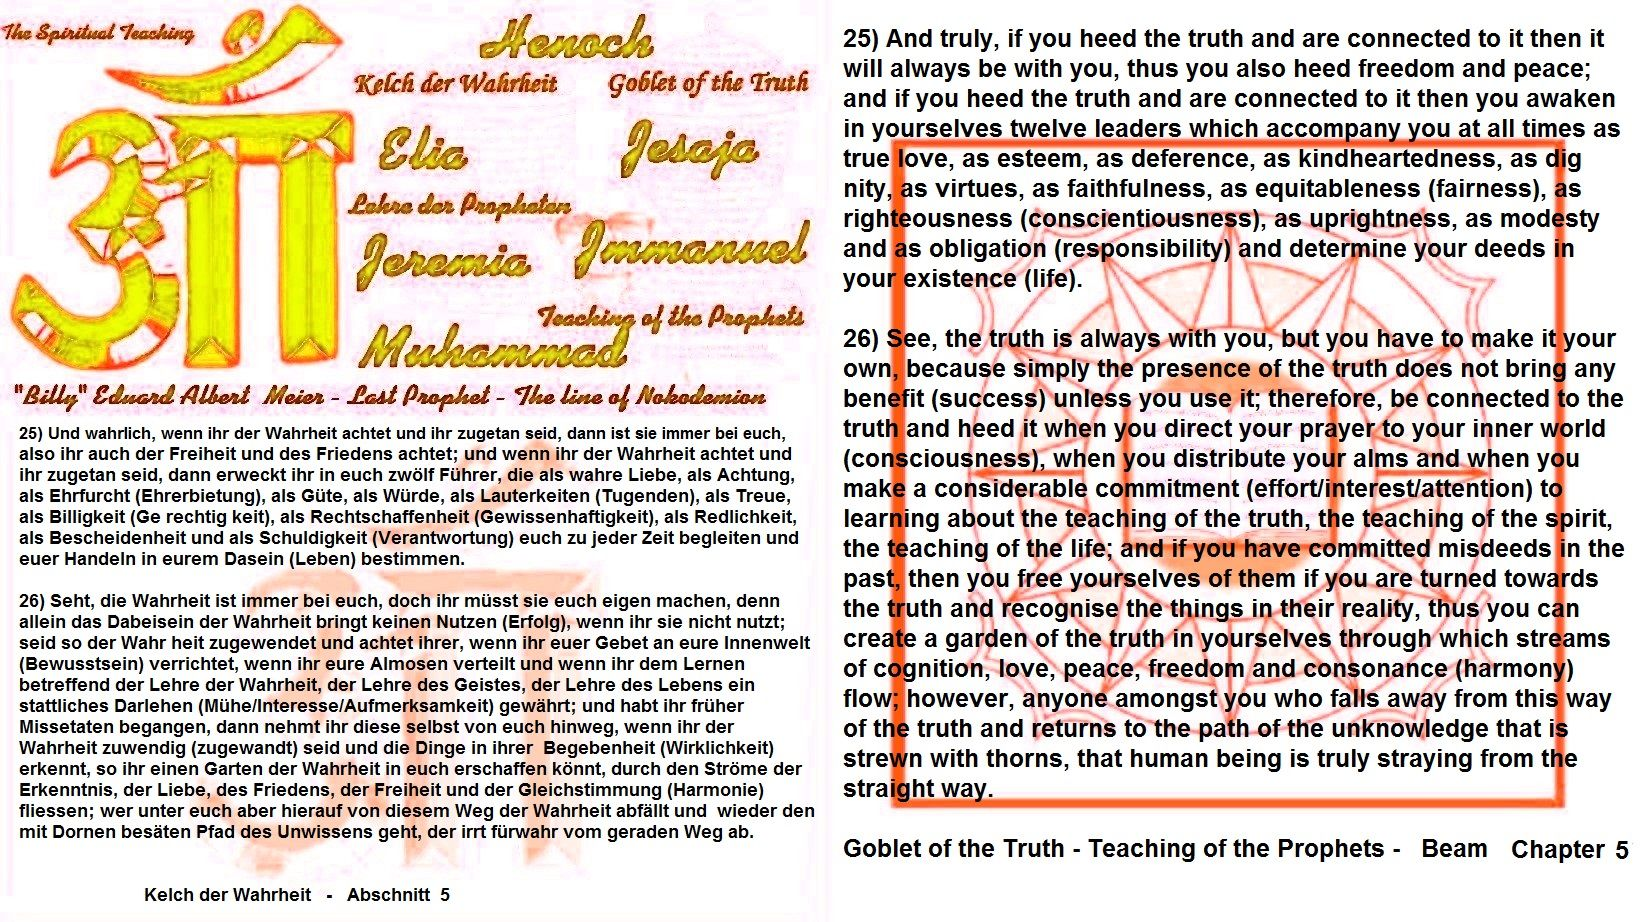 25) And truly, if you heed the truth and are connected to it then it will always be with you, thus you also heed freedom and peace; and if you heed the truth and are connected to it then you awaken in yourselves twelve leaders which accompany you at all times as true love, as esteem, as deference, as kindheartedness, as dig nity, as virtues, as faithfulness, as equitableness (fairness), as righteousness (conscientiousness), as uprightness, as modesty and as obligation